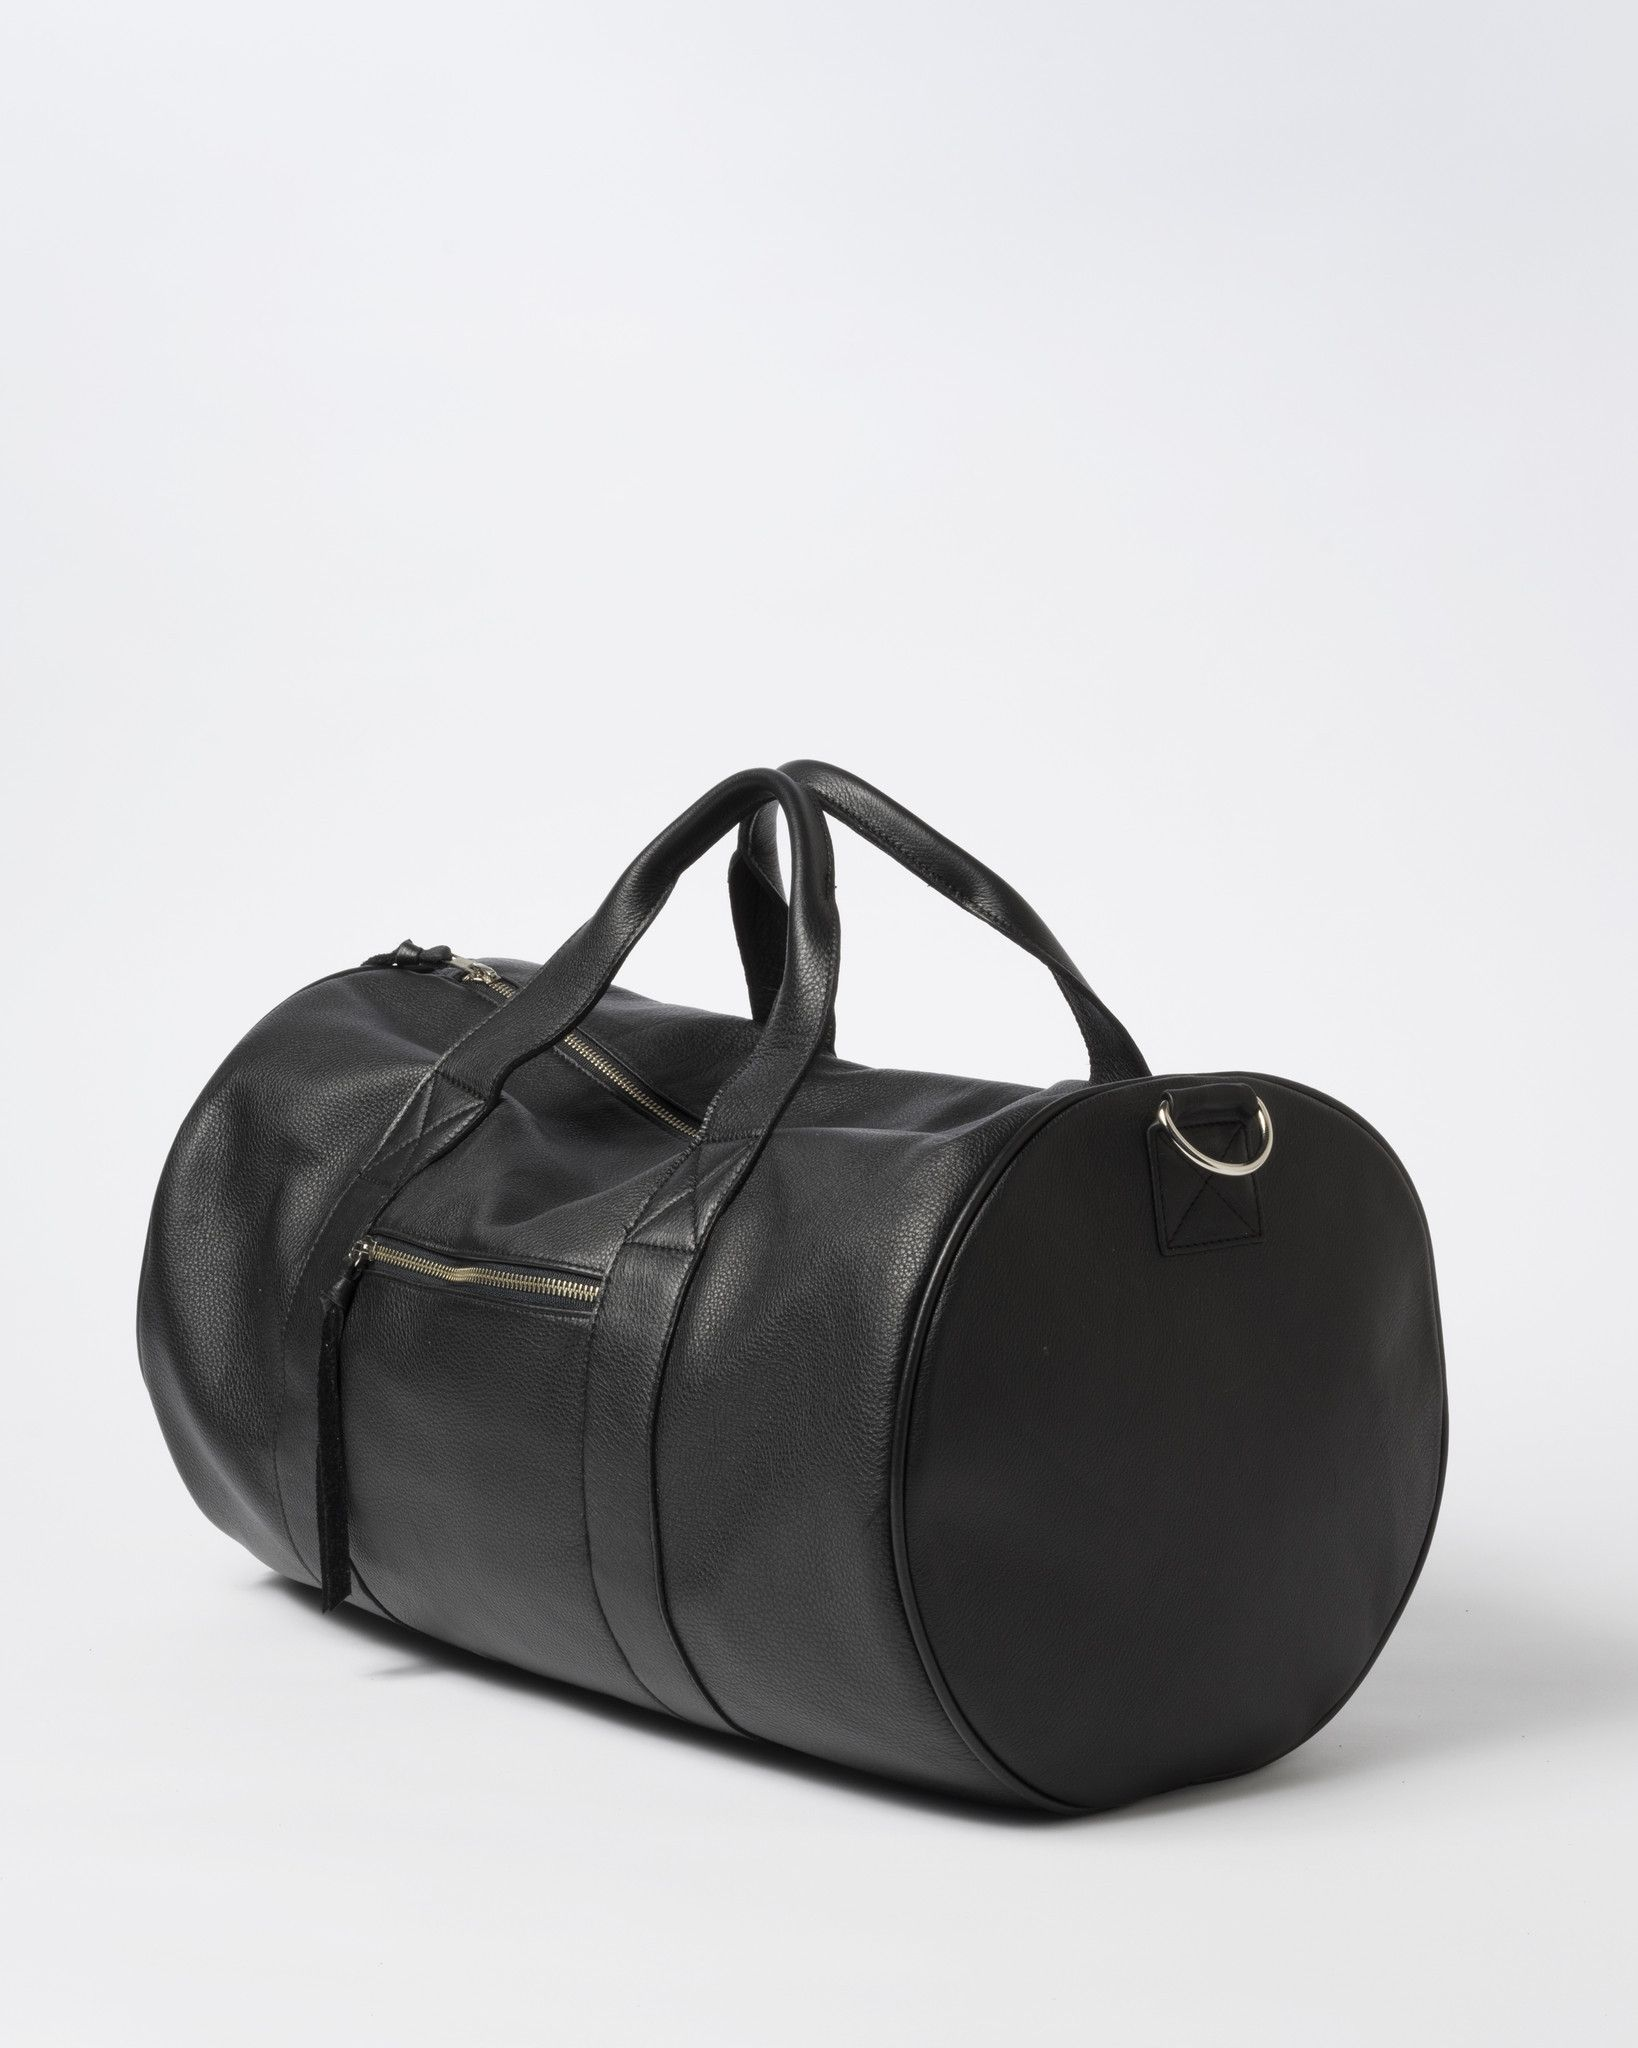 Duffel Bag in Black Leather - CLYDE  3be81151e13a7